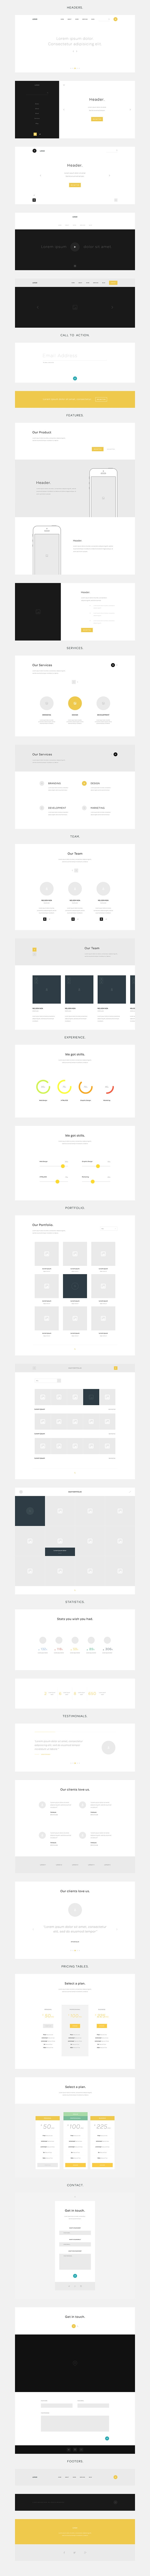 One-page-wireframes-600